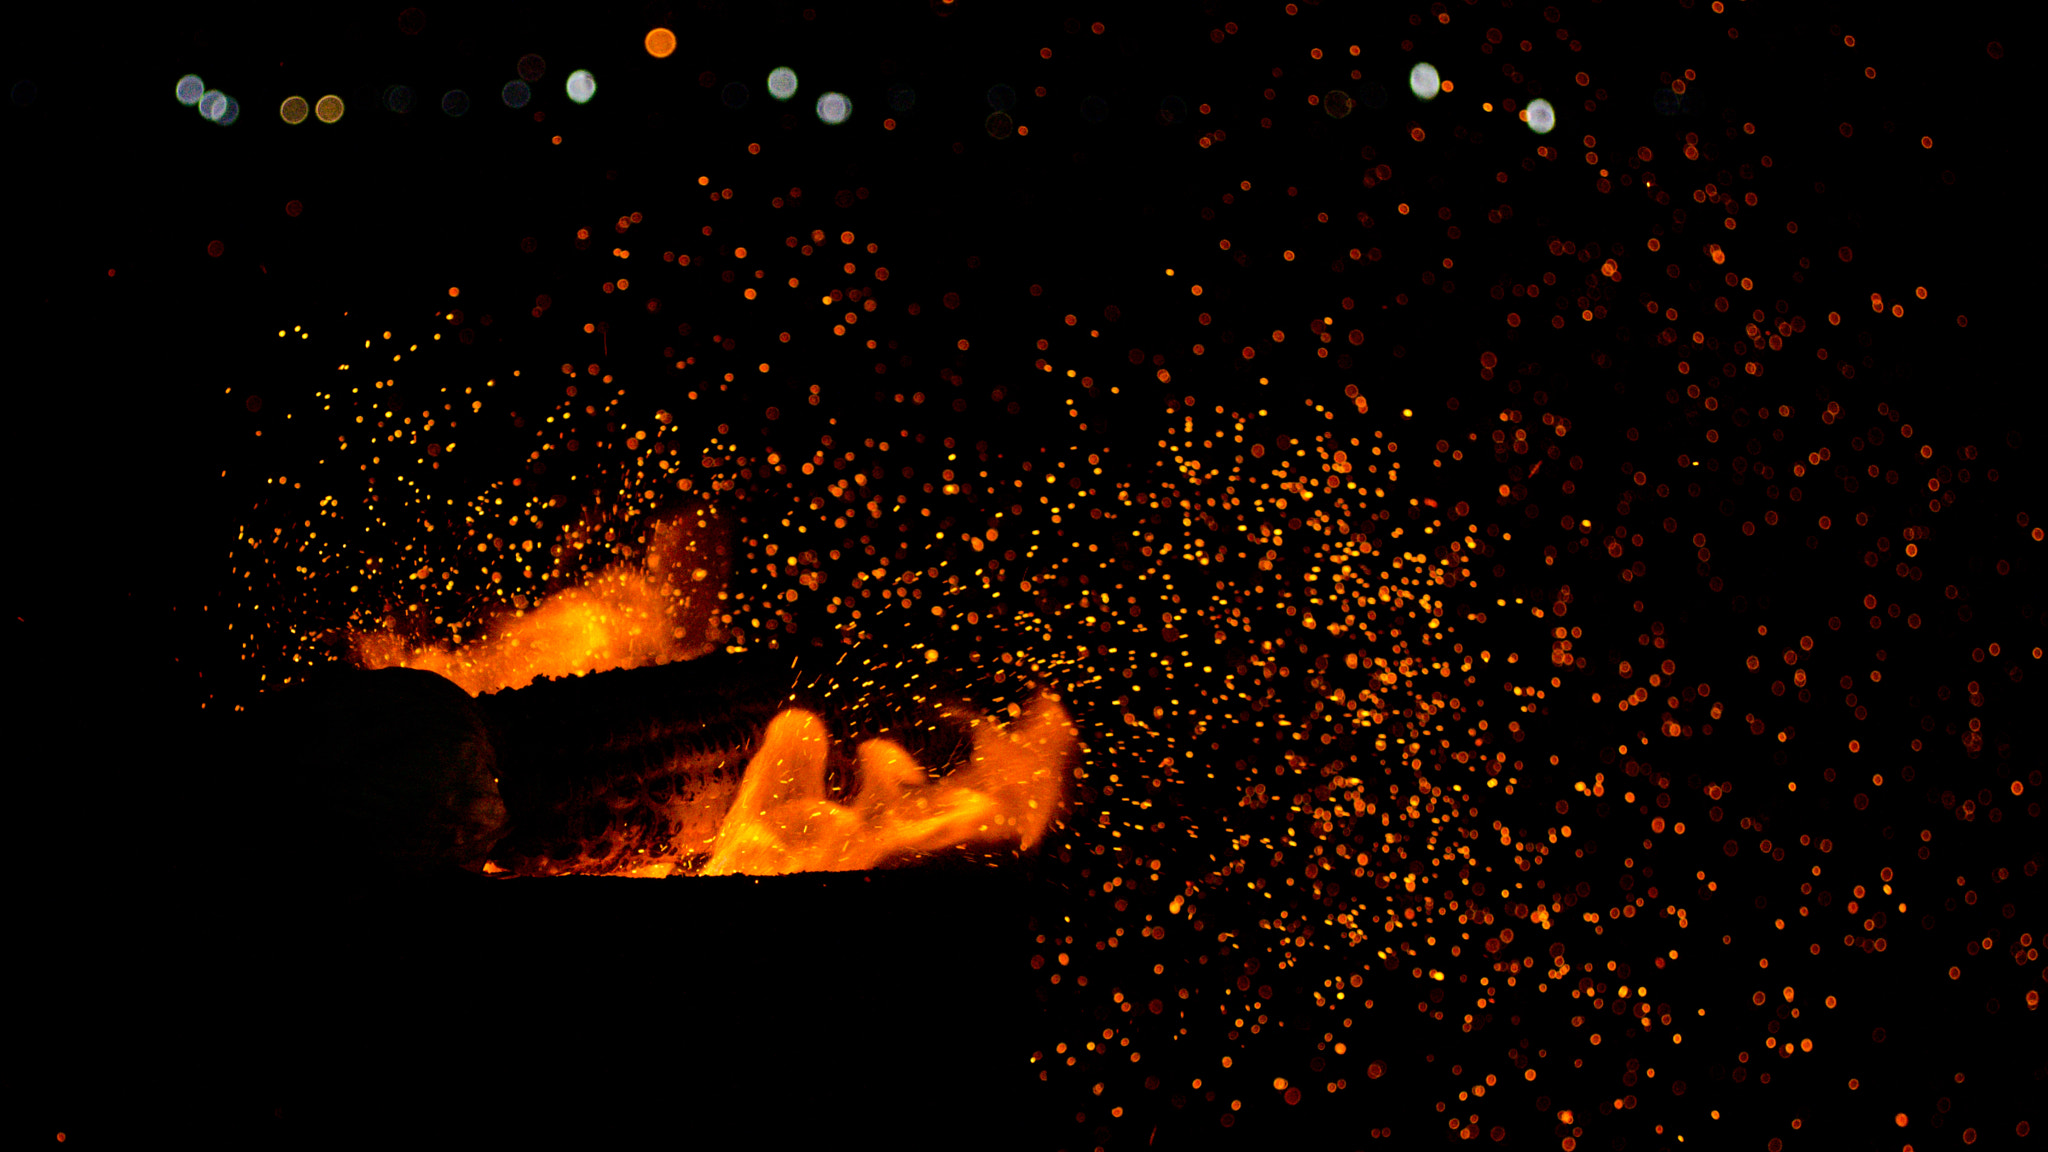 Photograph Scatter by Sandeep Mishra on 500px